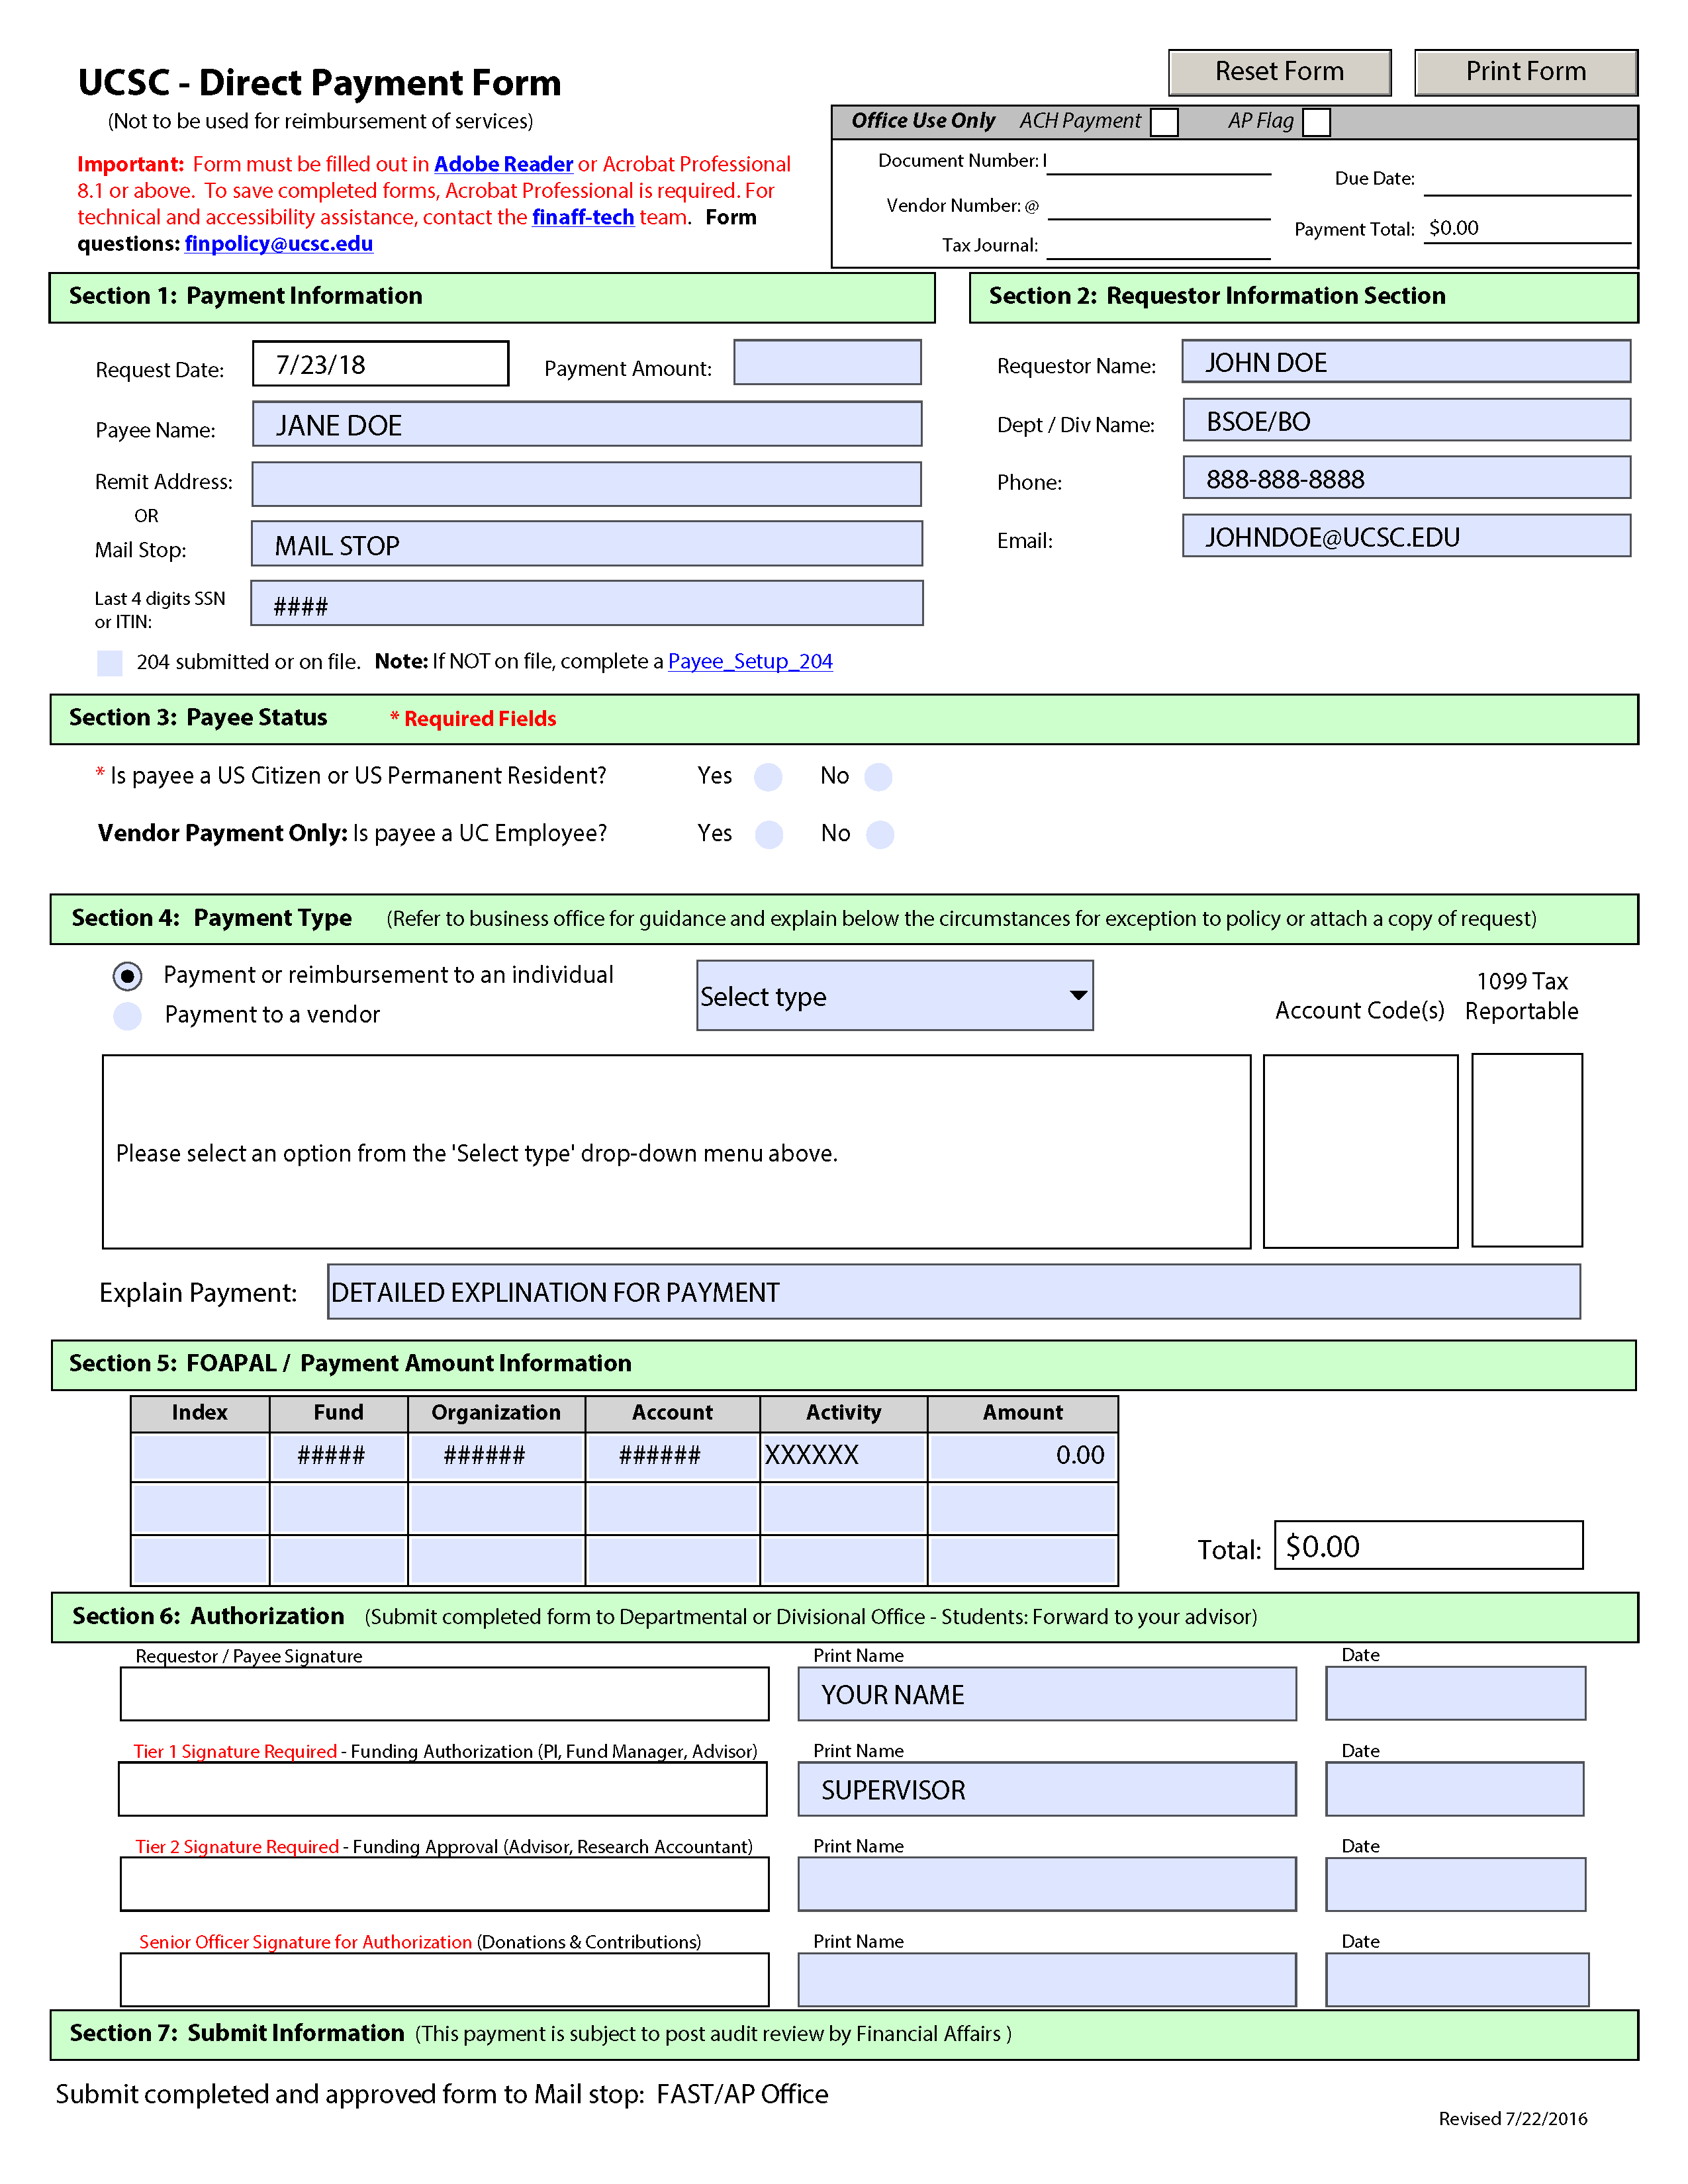 Example of Direct Payment Form